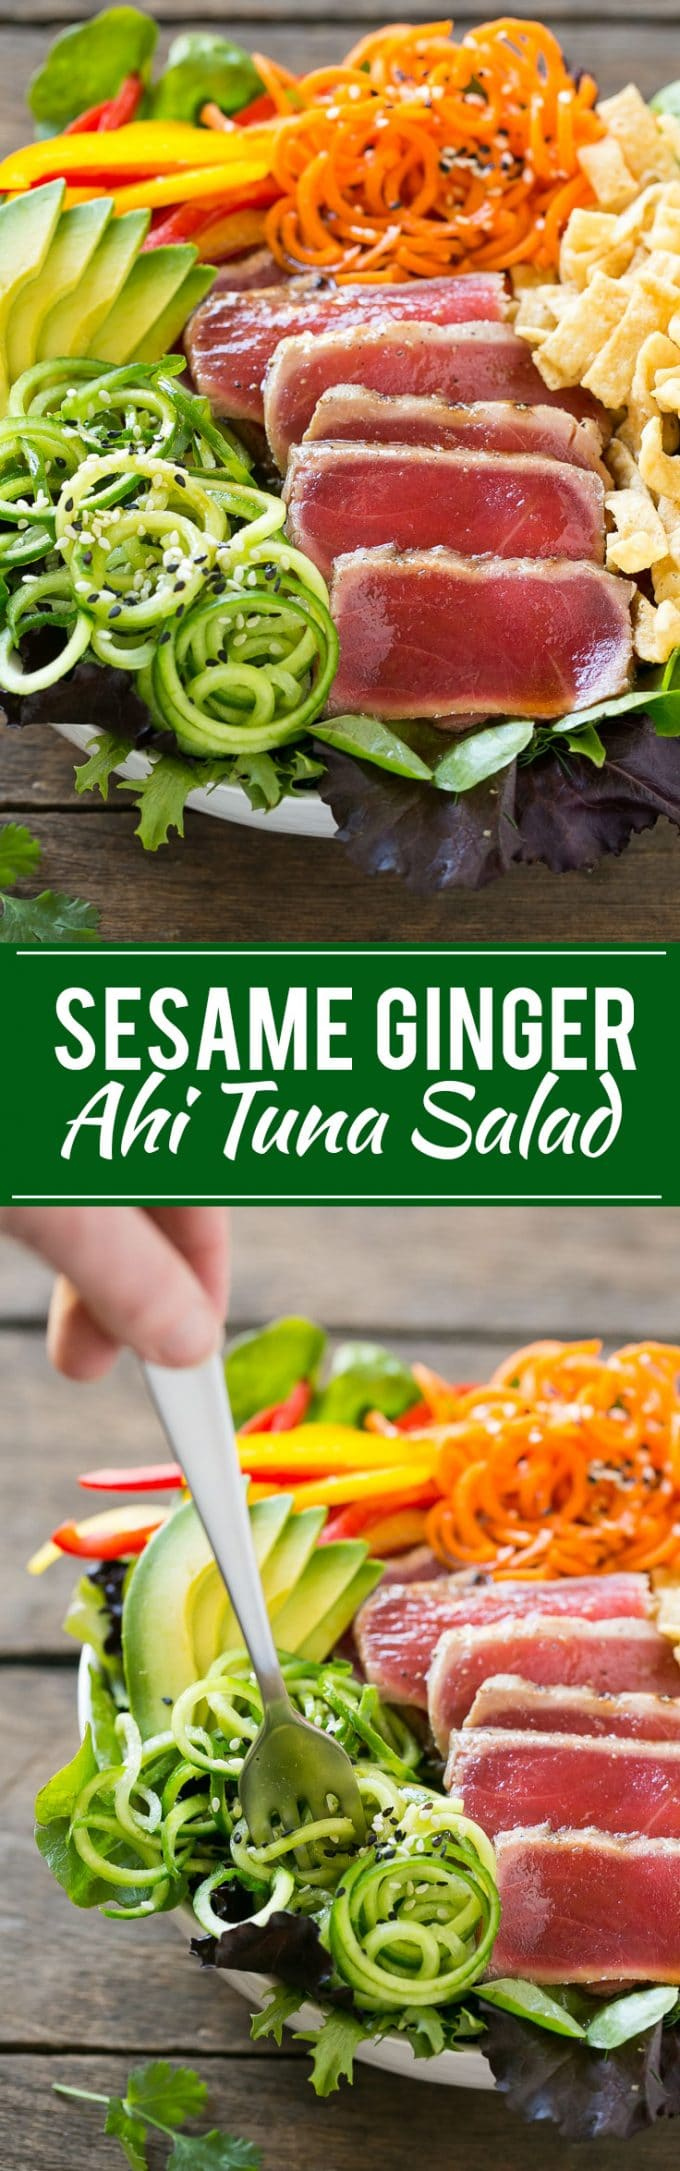 Ahi Tuna Salad with Sesame Ginger Dressing Recipe | Tuna Salad | Seafood Salad #ahi #tuna #salad #dinner #lunch #dinneratthezoo